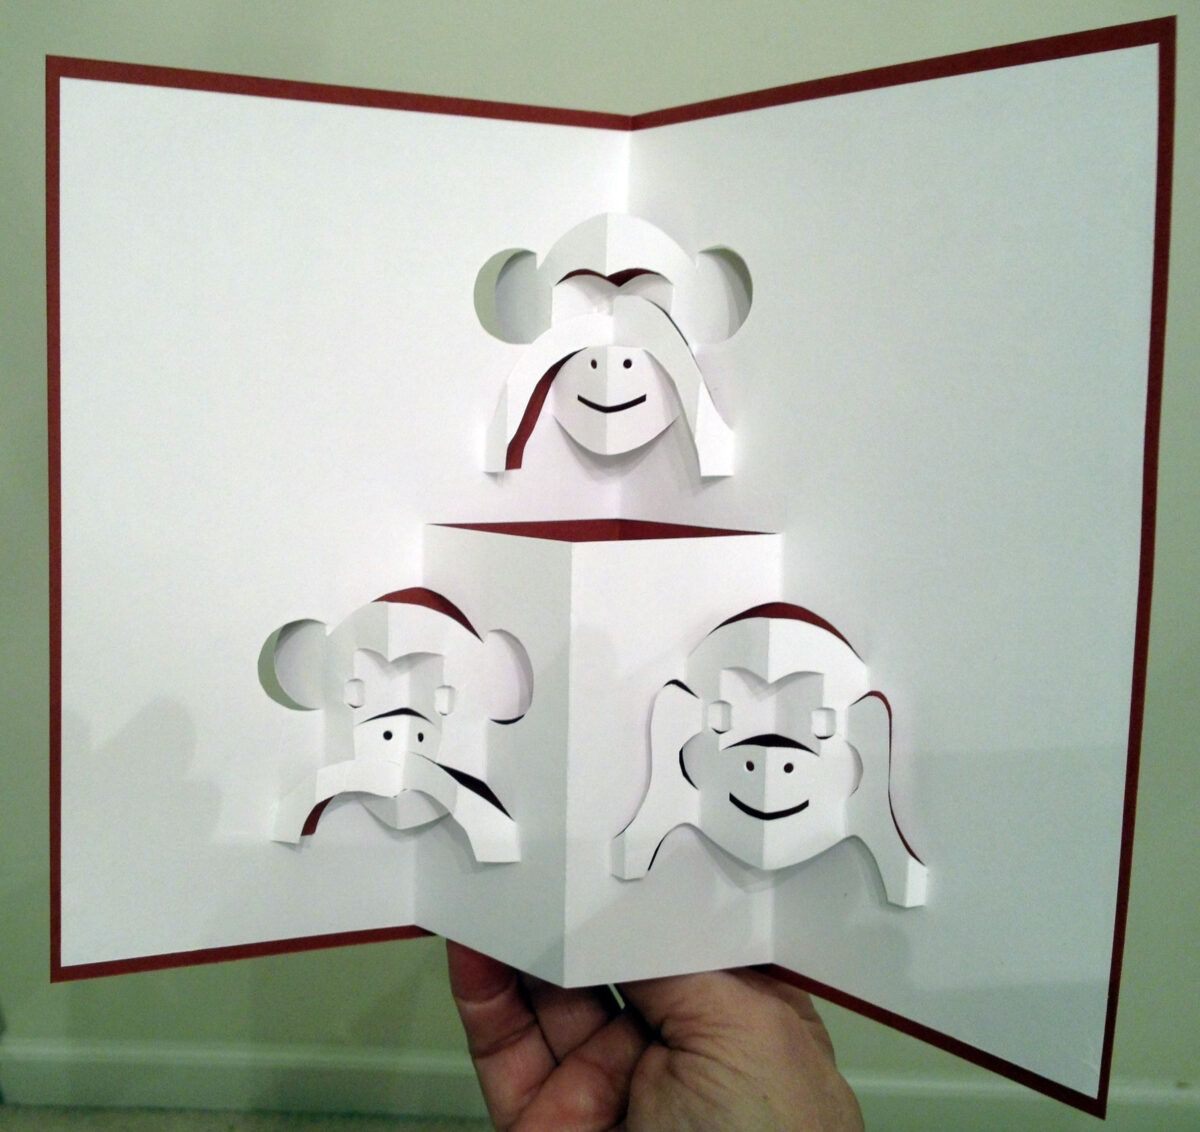 Pop Up Papercraft Three Monkeys Pop Up Card Template From Intended For Pop Up Card Templates Free Printable Carta